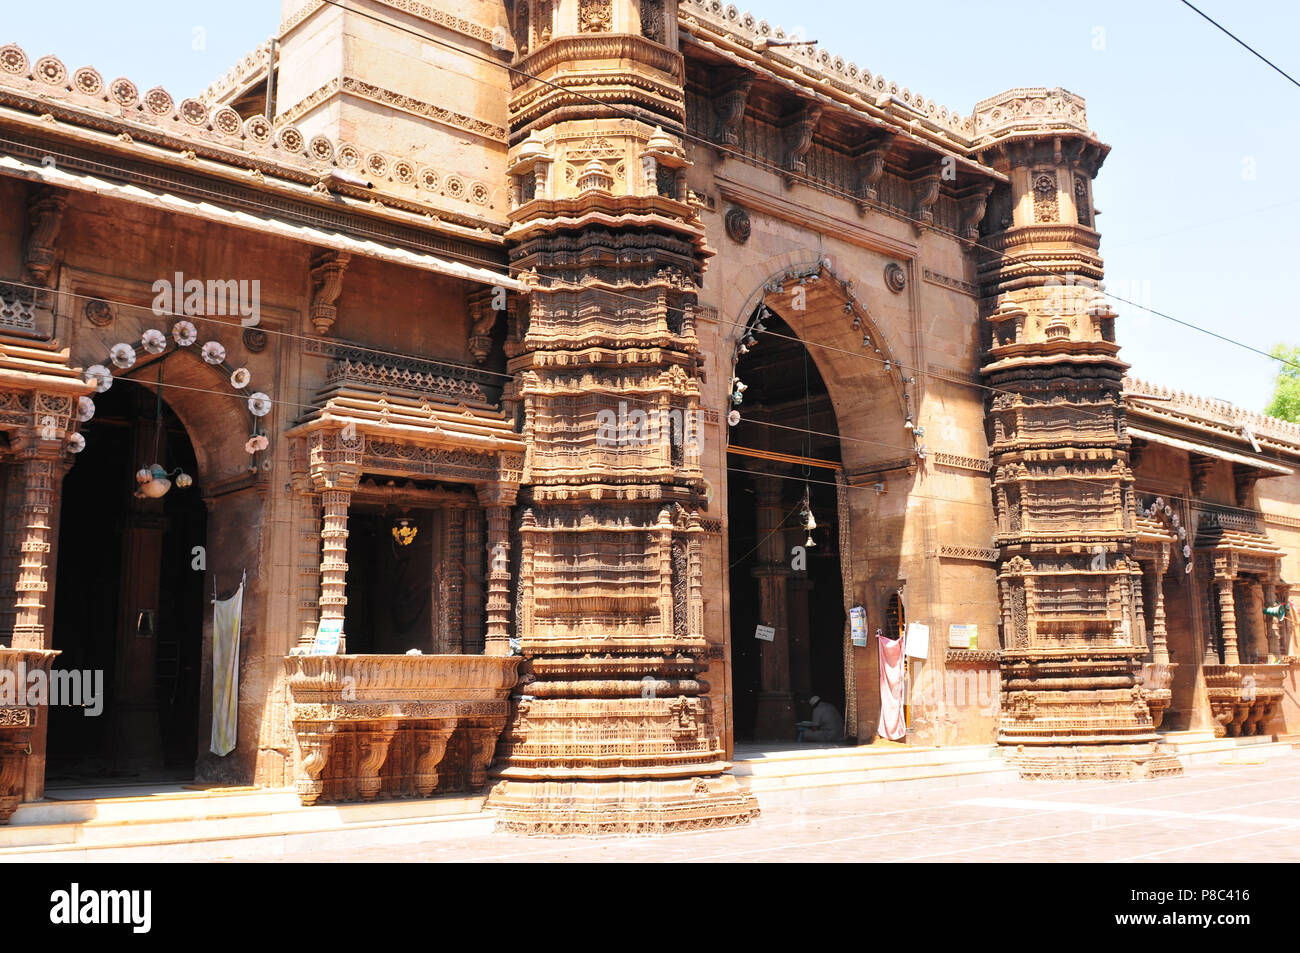 Religion, Rani-Mosque, arhcitecture, Ahmedabad-City, Gujarat, India - Stock Image